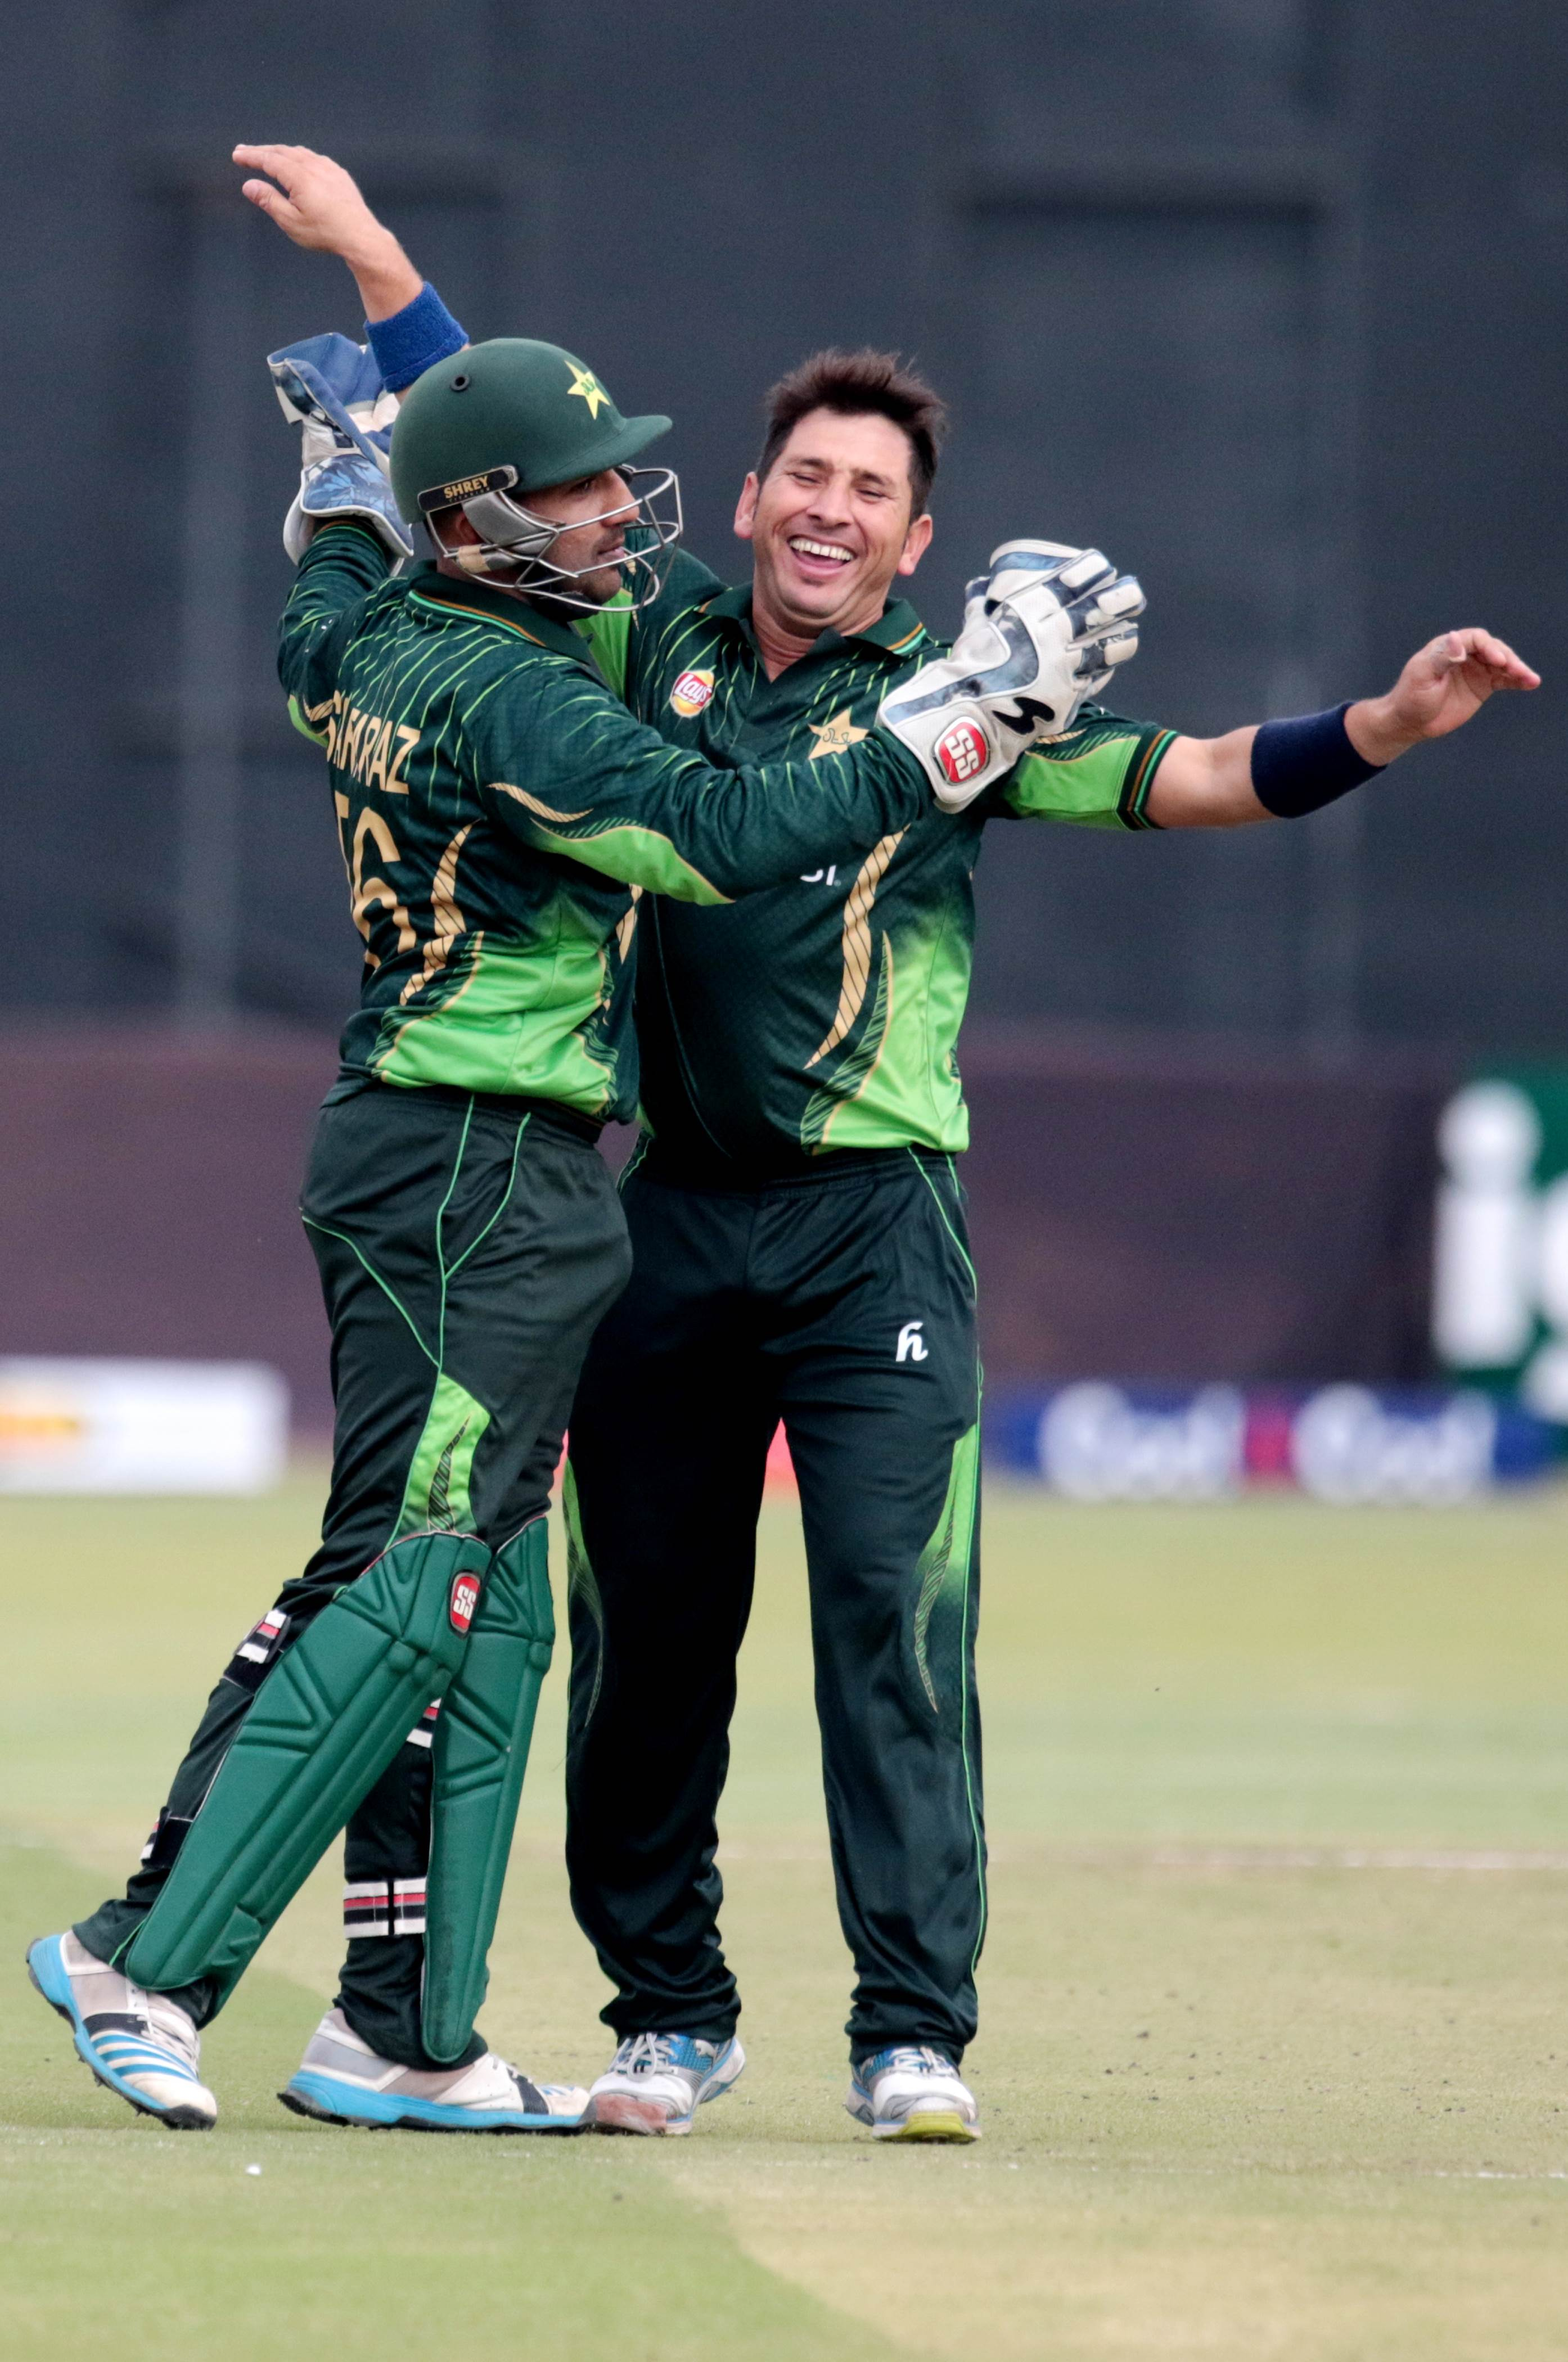 Pakistani bowler Yasir Shah (R)celebrates a wicket with wicketkeeper Sarfraz Ahmed during the first in a series of three One Day International (ODI) cricket matches between Pakistan and hosts Zimbabwe at the Harare Sports Club, in Harare on October 1, 2015.  AFP PHOTO / JEKESAI NJIKIZANA